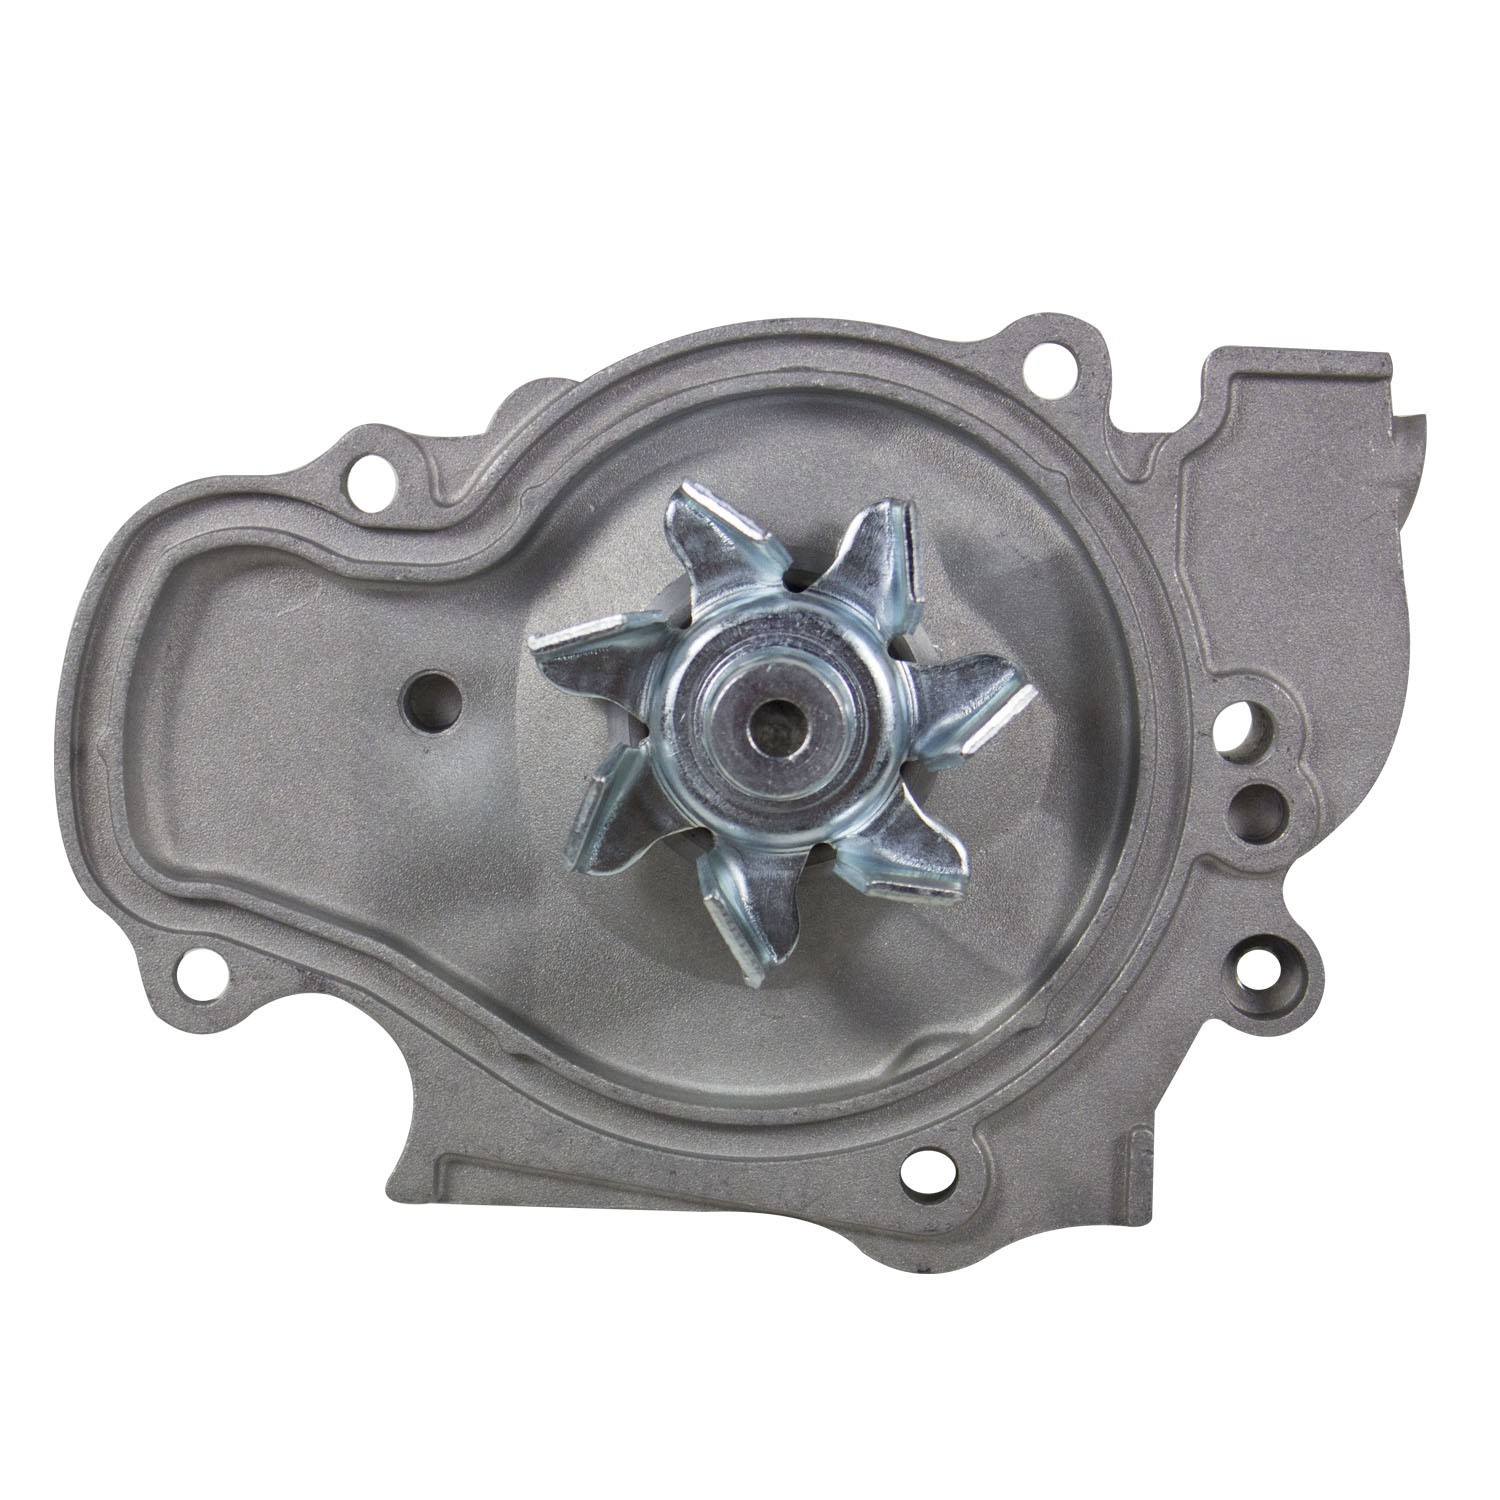 1998 Acura CL Engine Water Pump G6 135-1280 ...